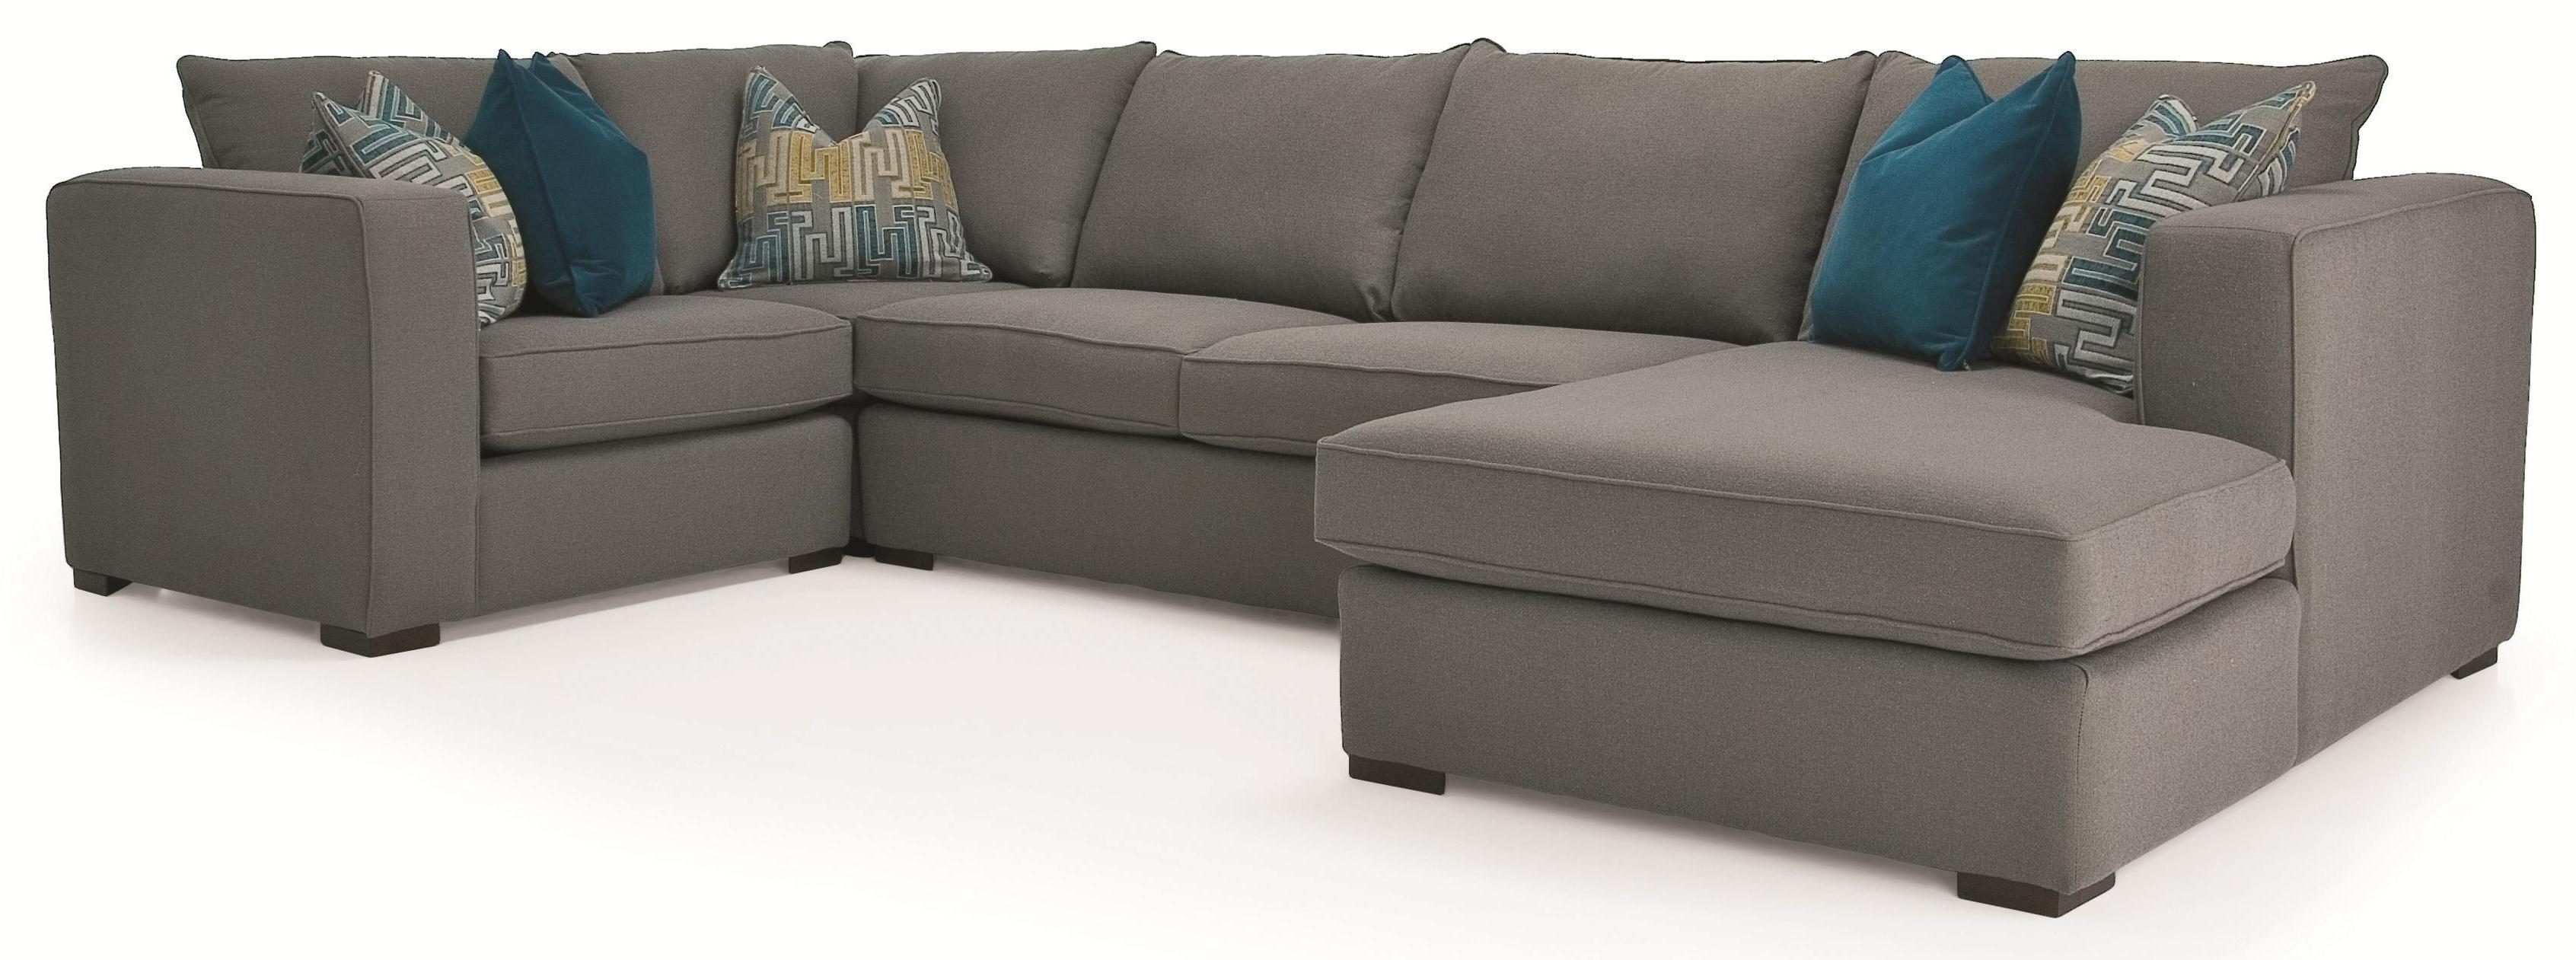 2900 4 pc. Sectional by Decor-Rest at Johnny Janosik